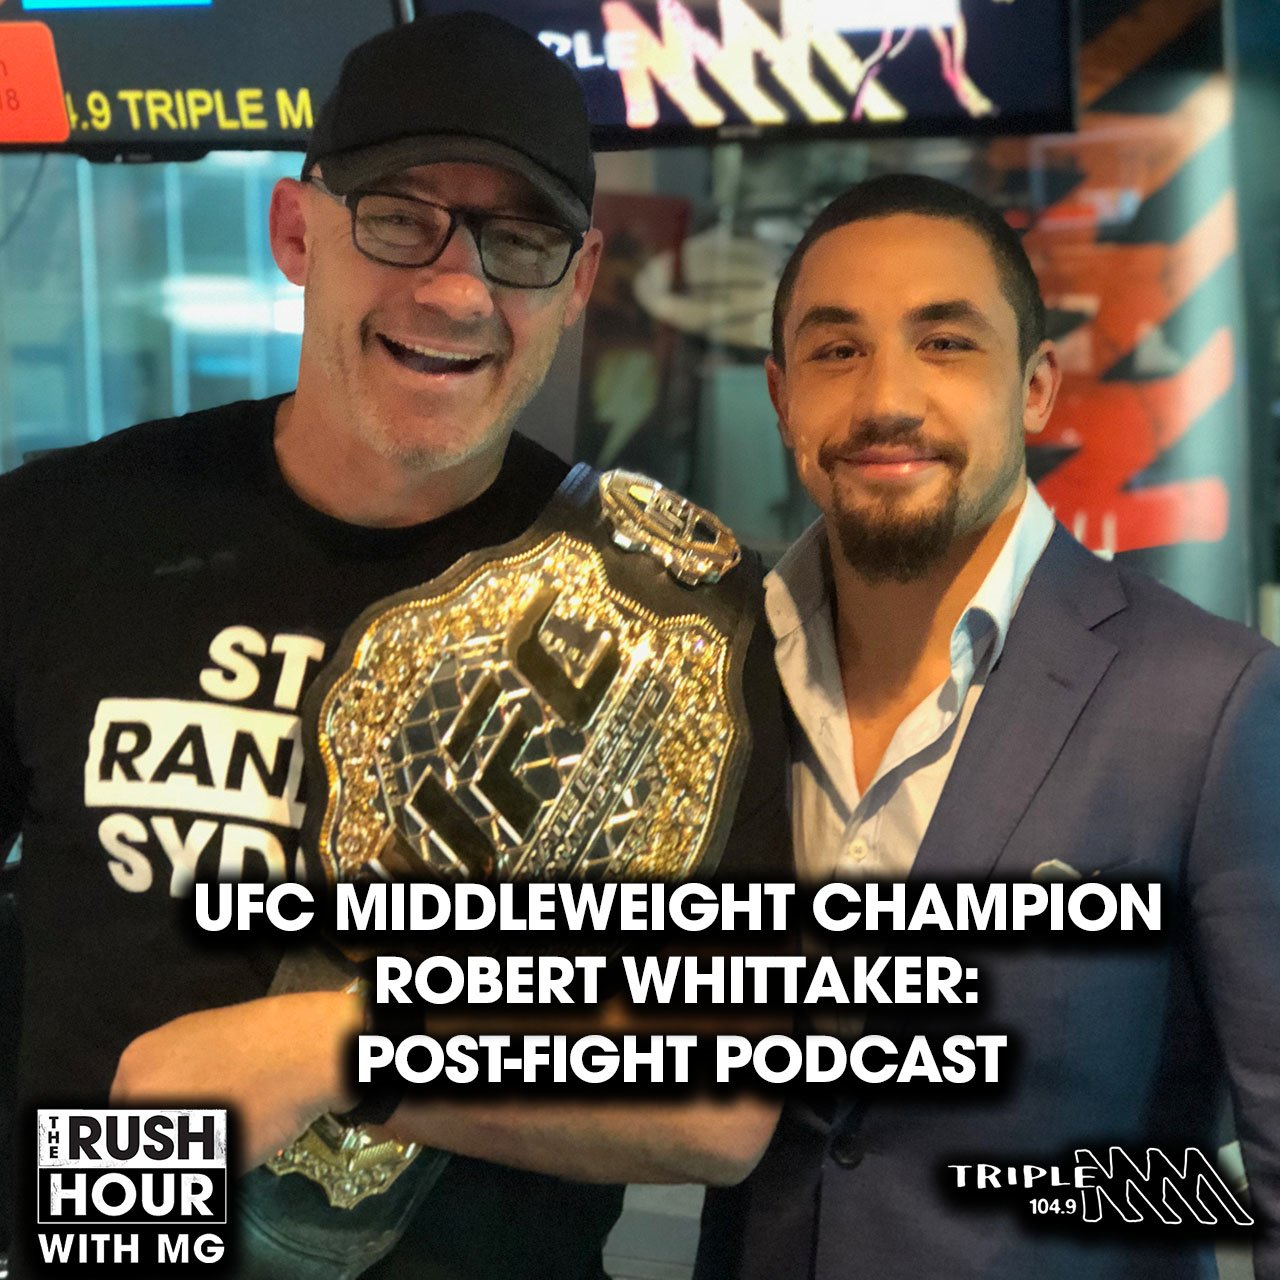 The Champ Is Here - Special Robert Whittaker Post Fight Podcast